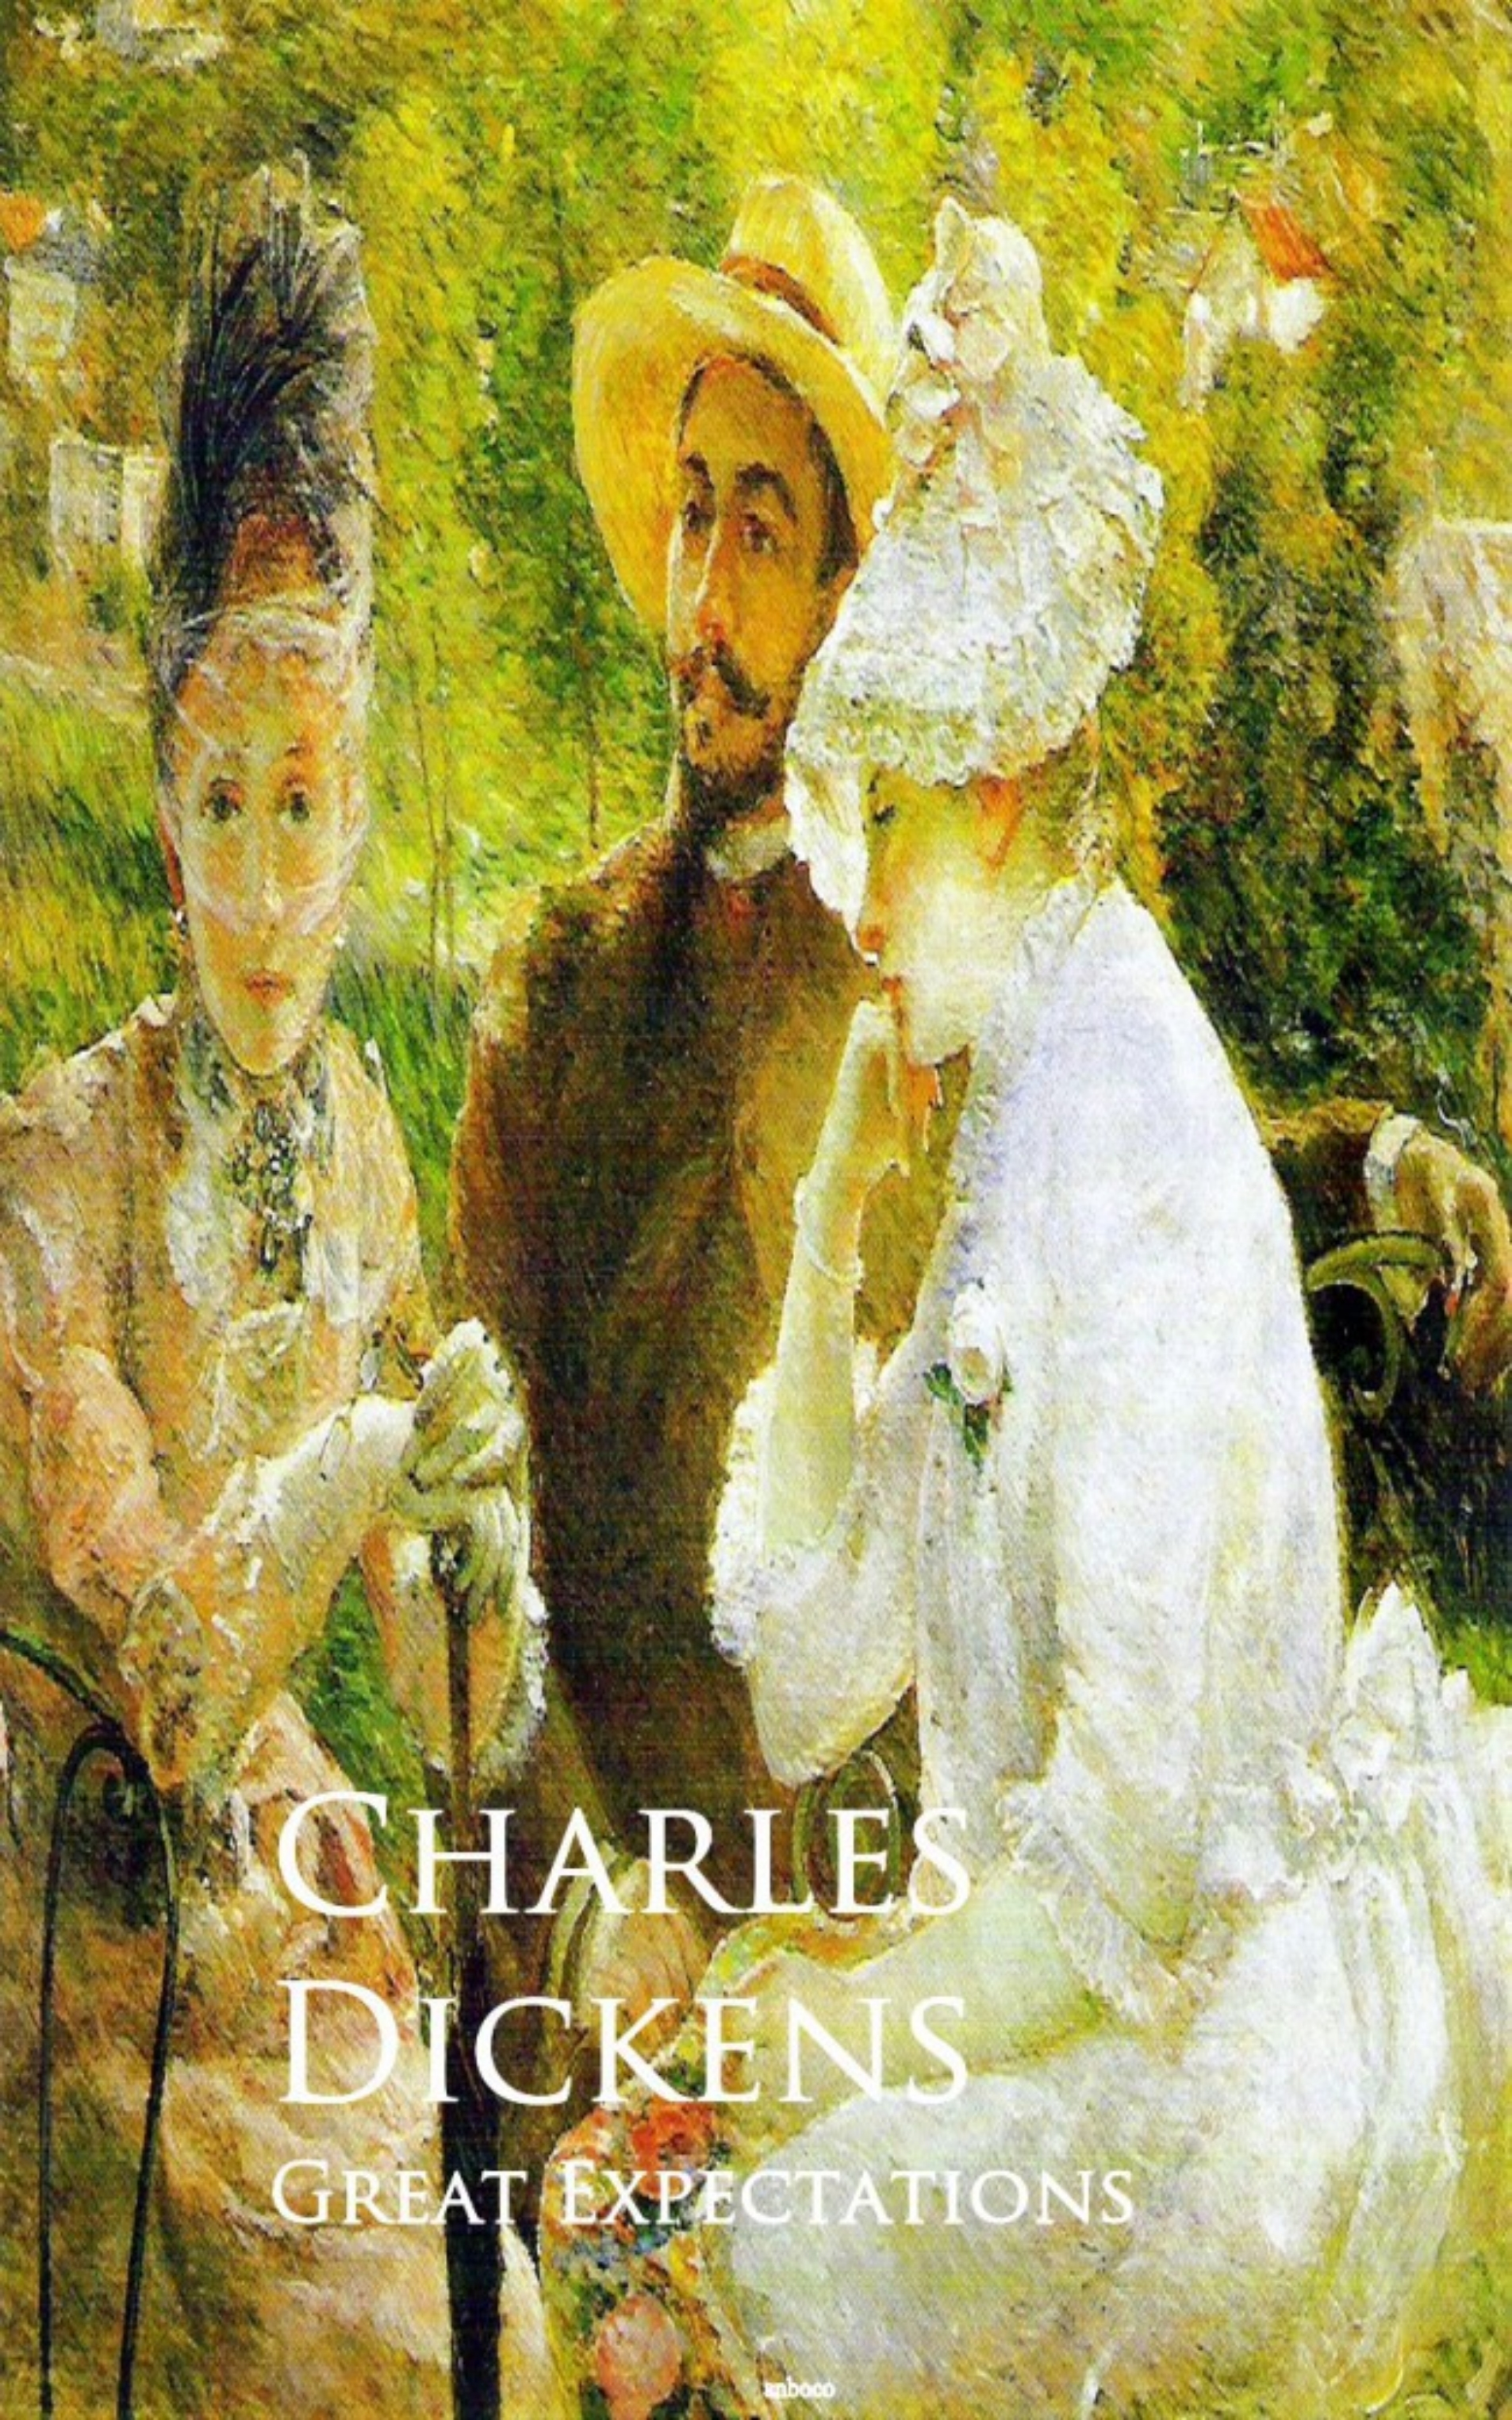 Charles Dickens Great Expectations charles 1812 1870 dickens the charles dickens collection